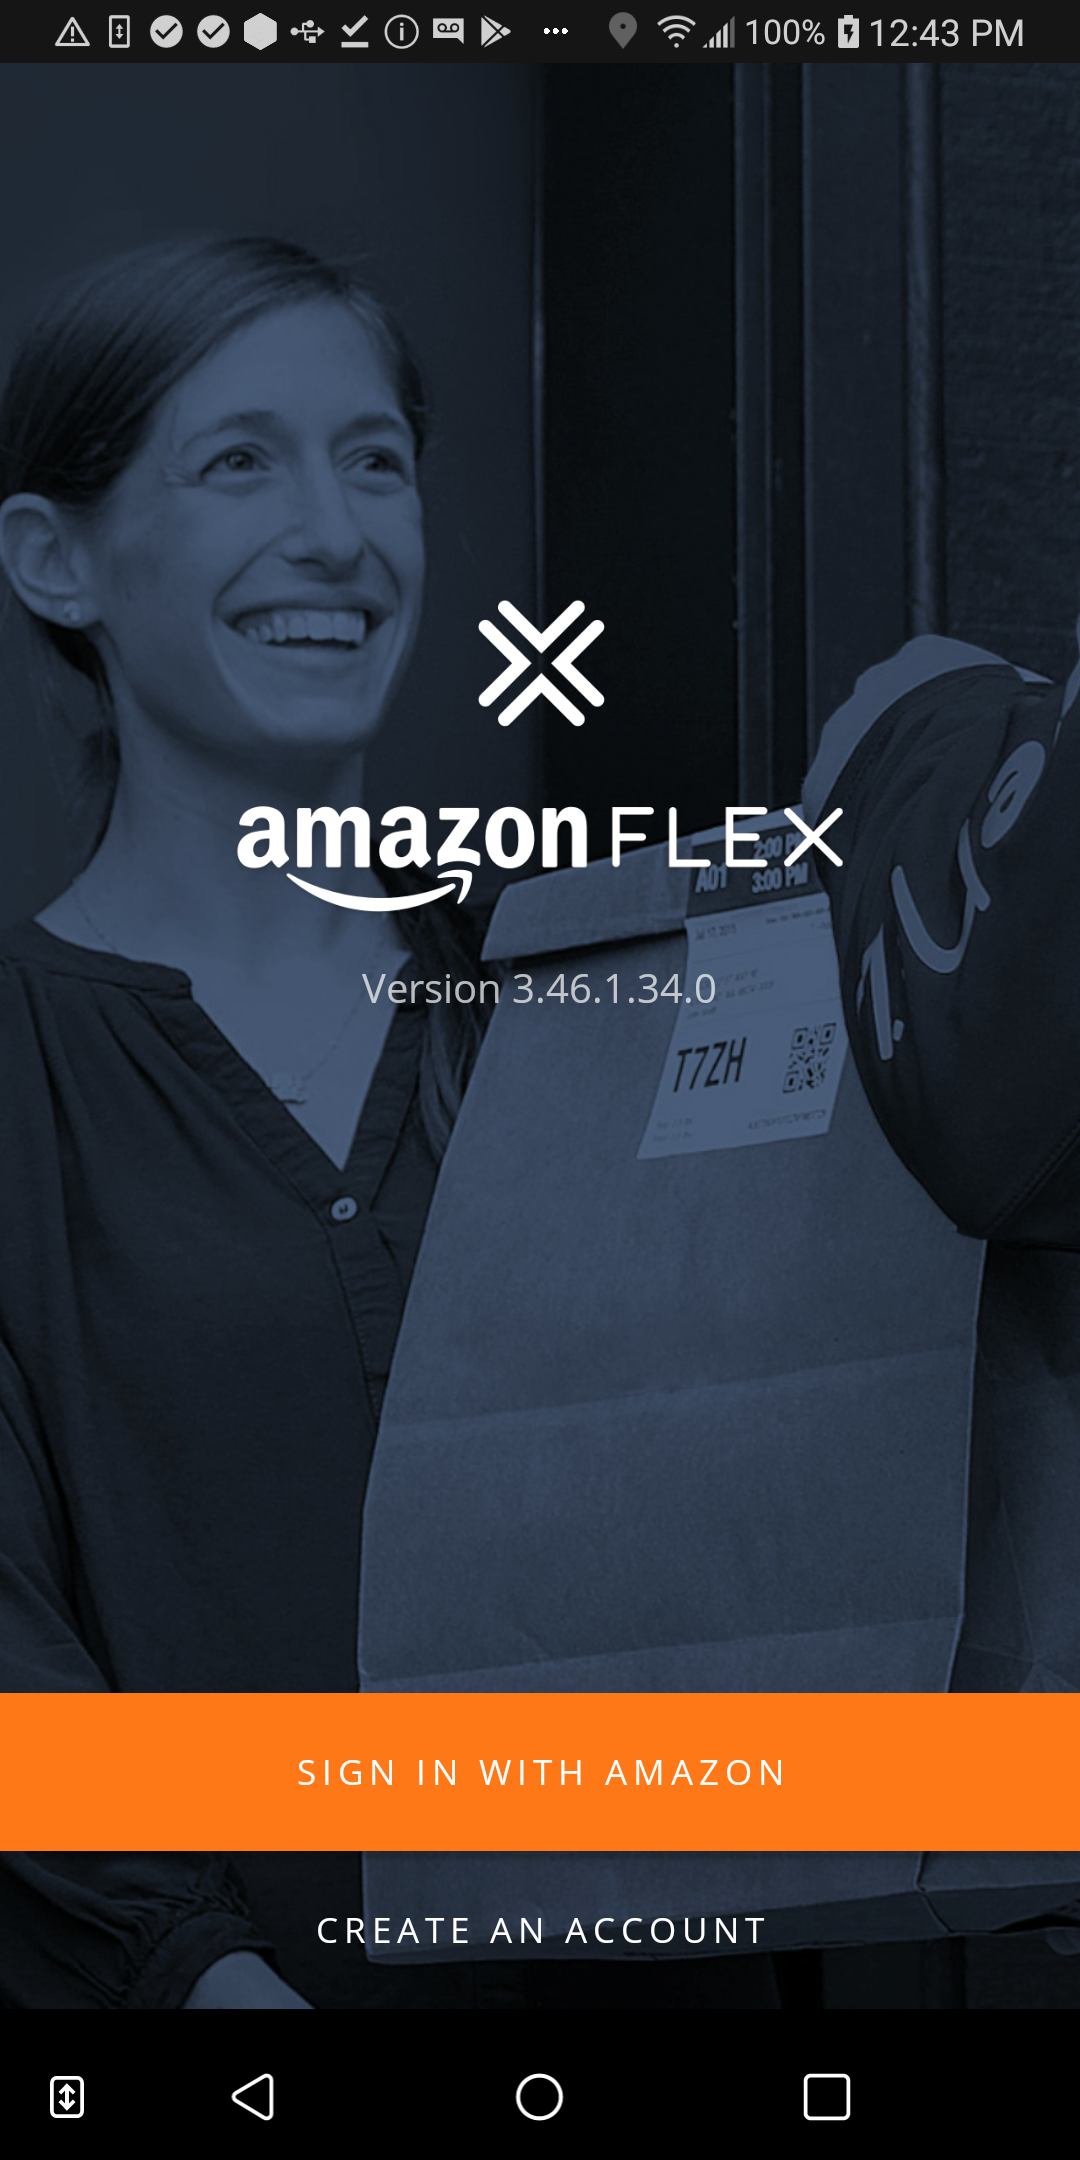 Amazon Flex Android App Update